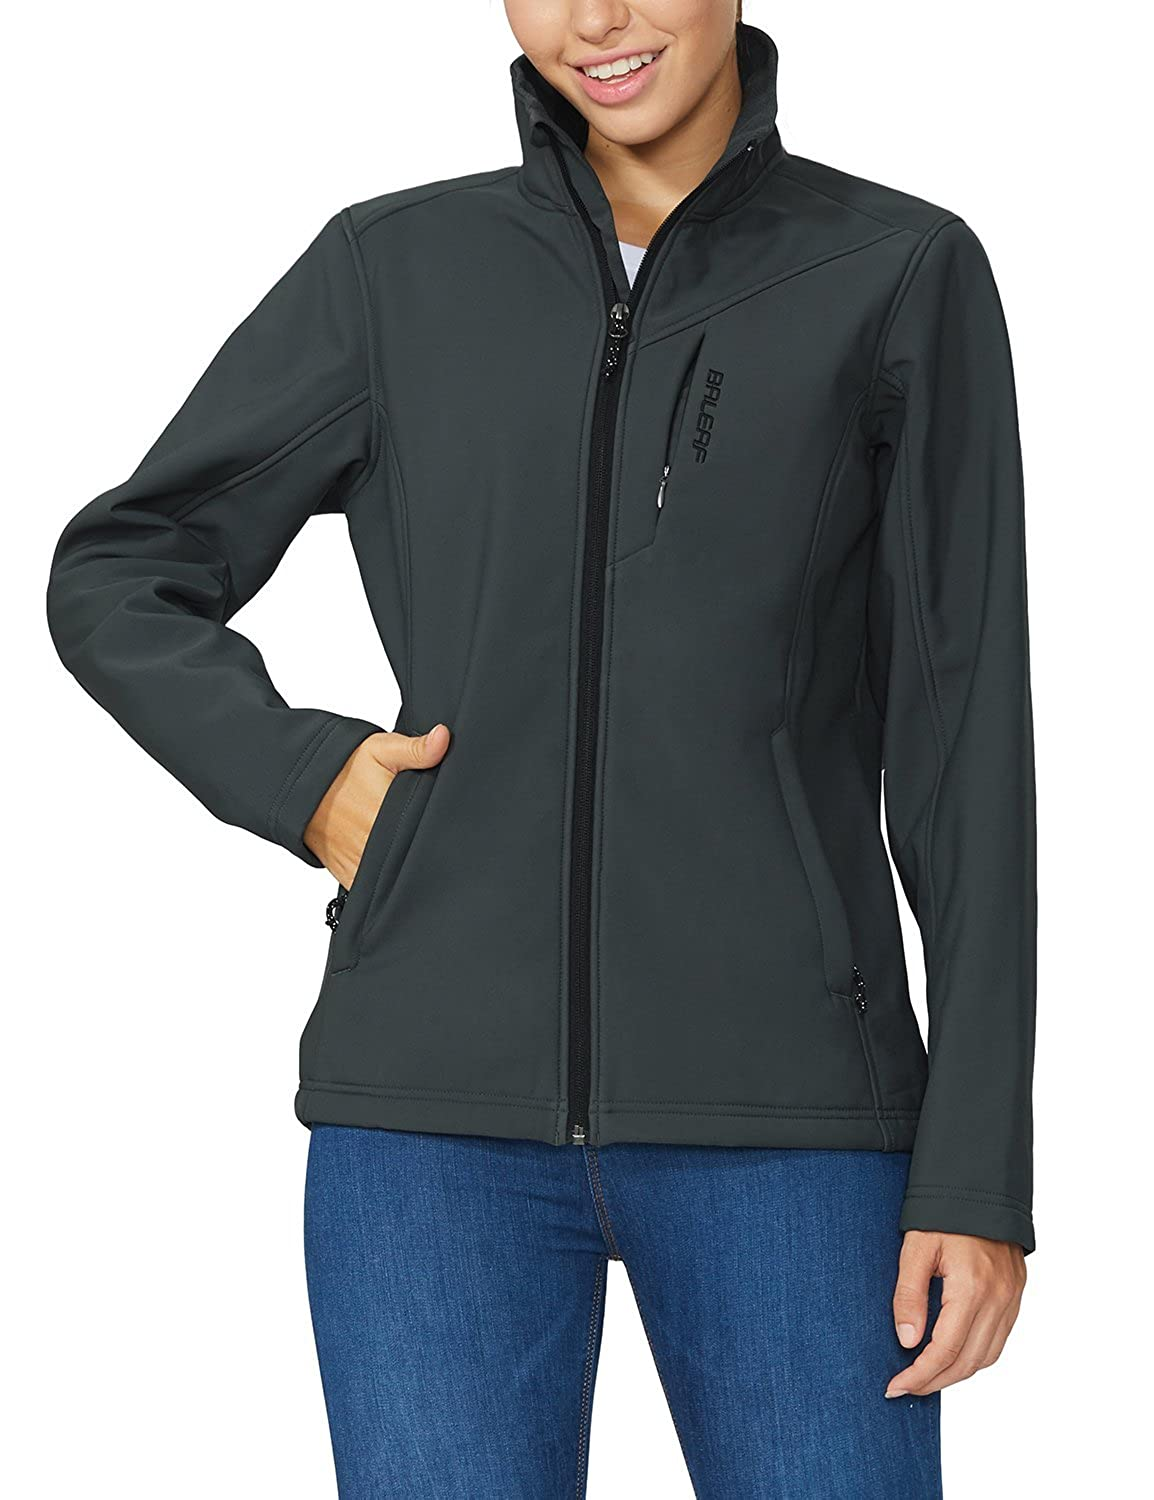 Baleaf Women's Waterproof Windproof Outdoor Softshell Jacket Microfleece Lined